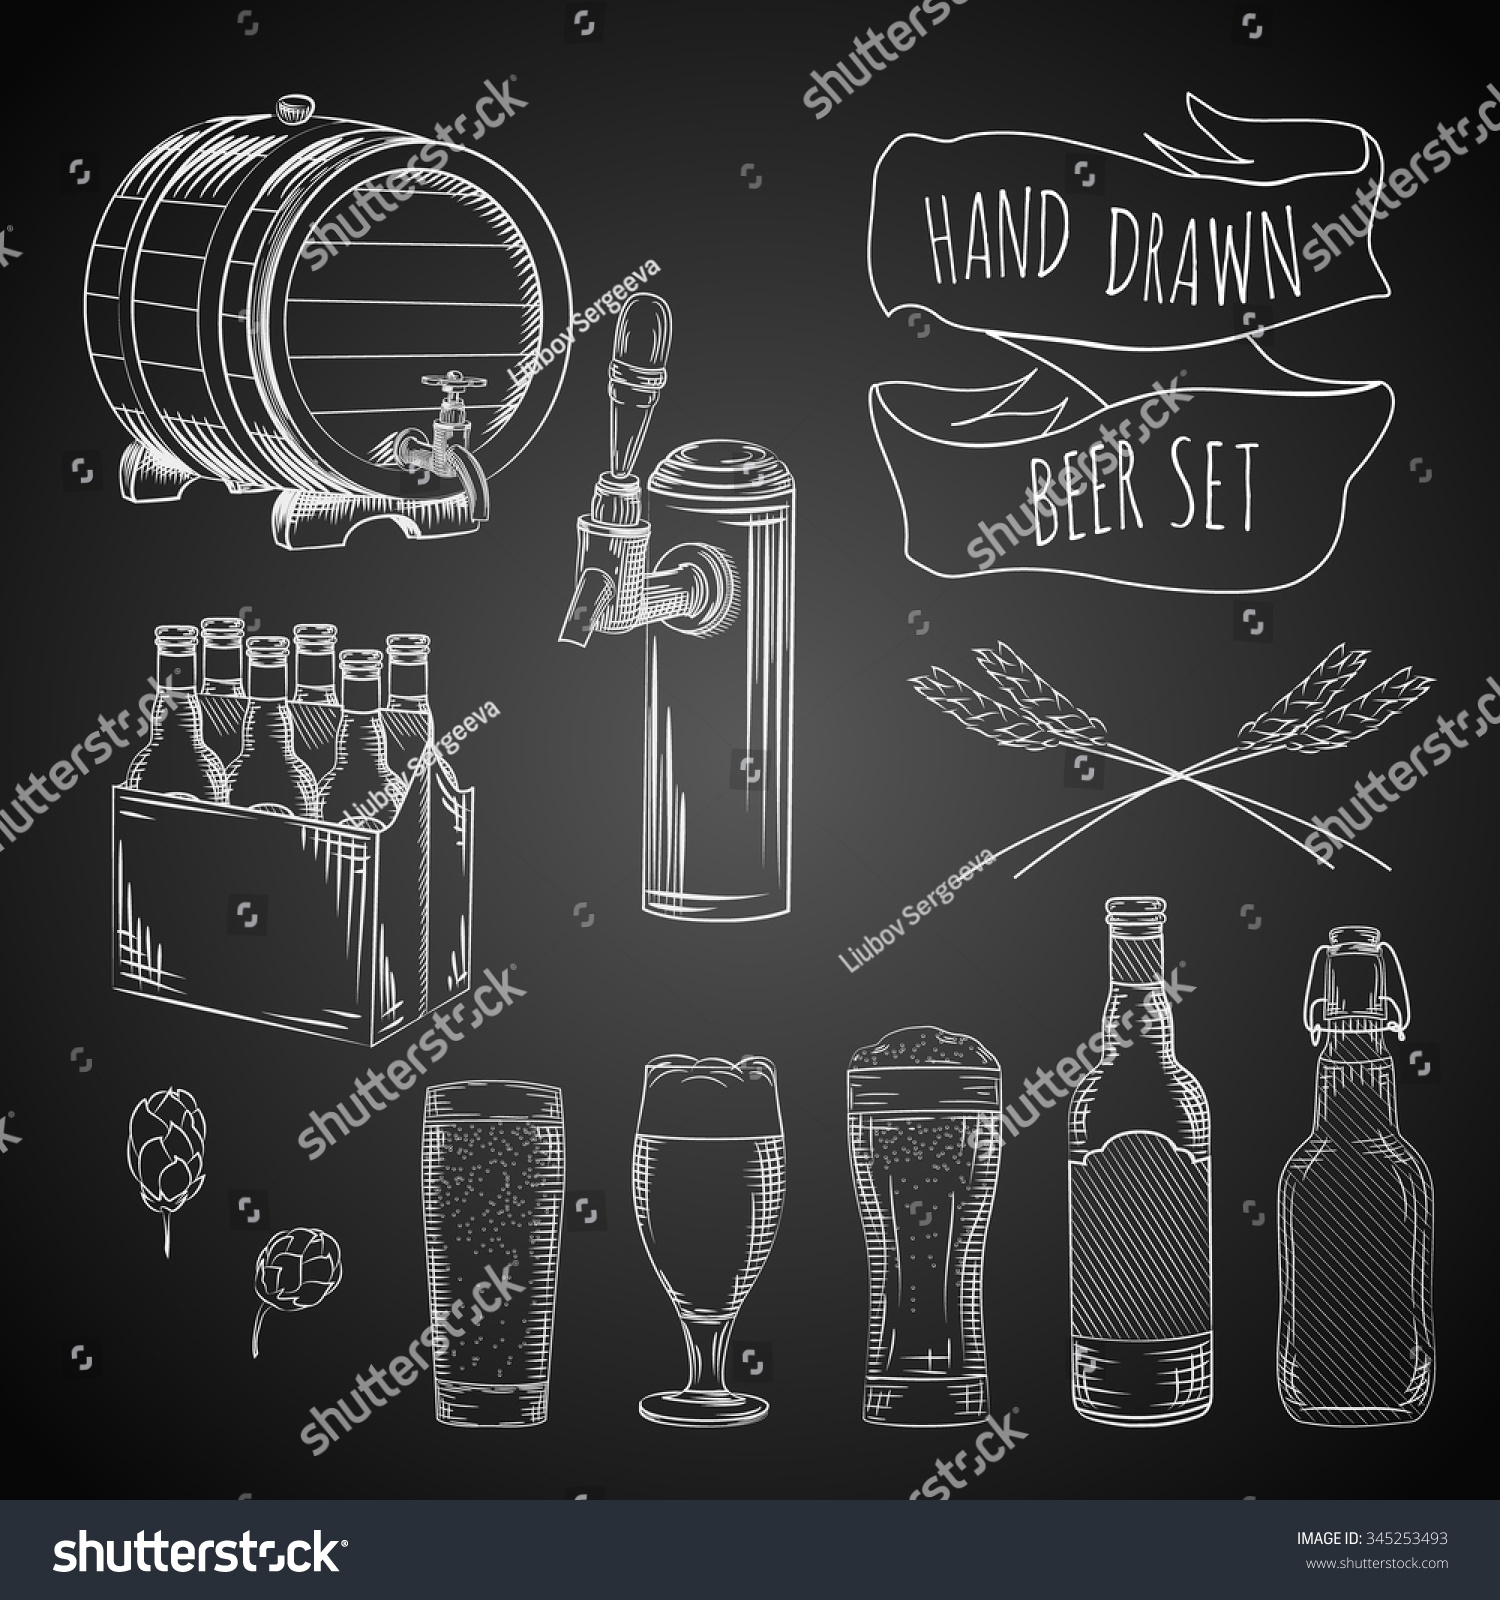 Vector Hand Drawn Beer Set Glasses Stock-Vektorgrafik (Lizenzfrei ...